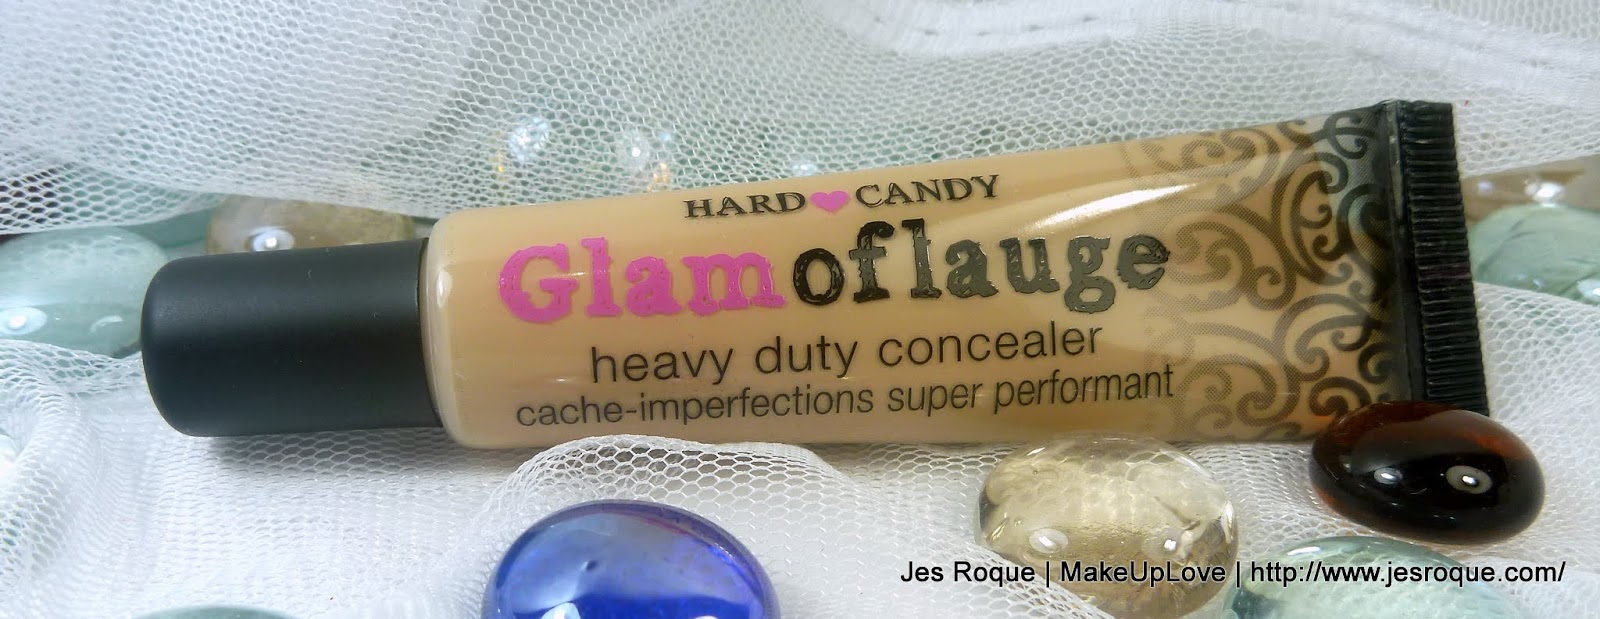 MakeUpLove | Beauty, Fashion and Lifestyle: Review: Hard Candy ...